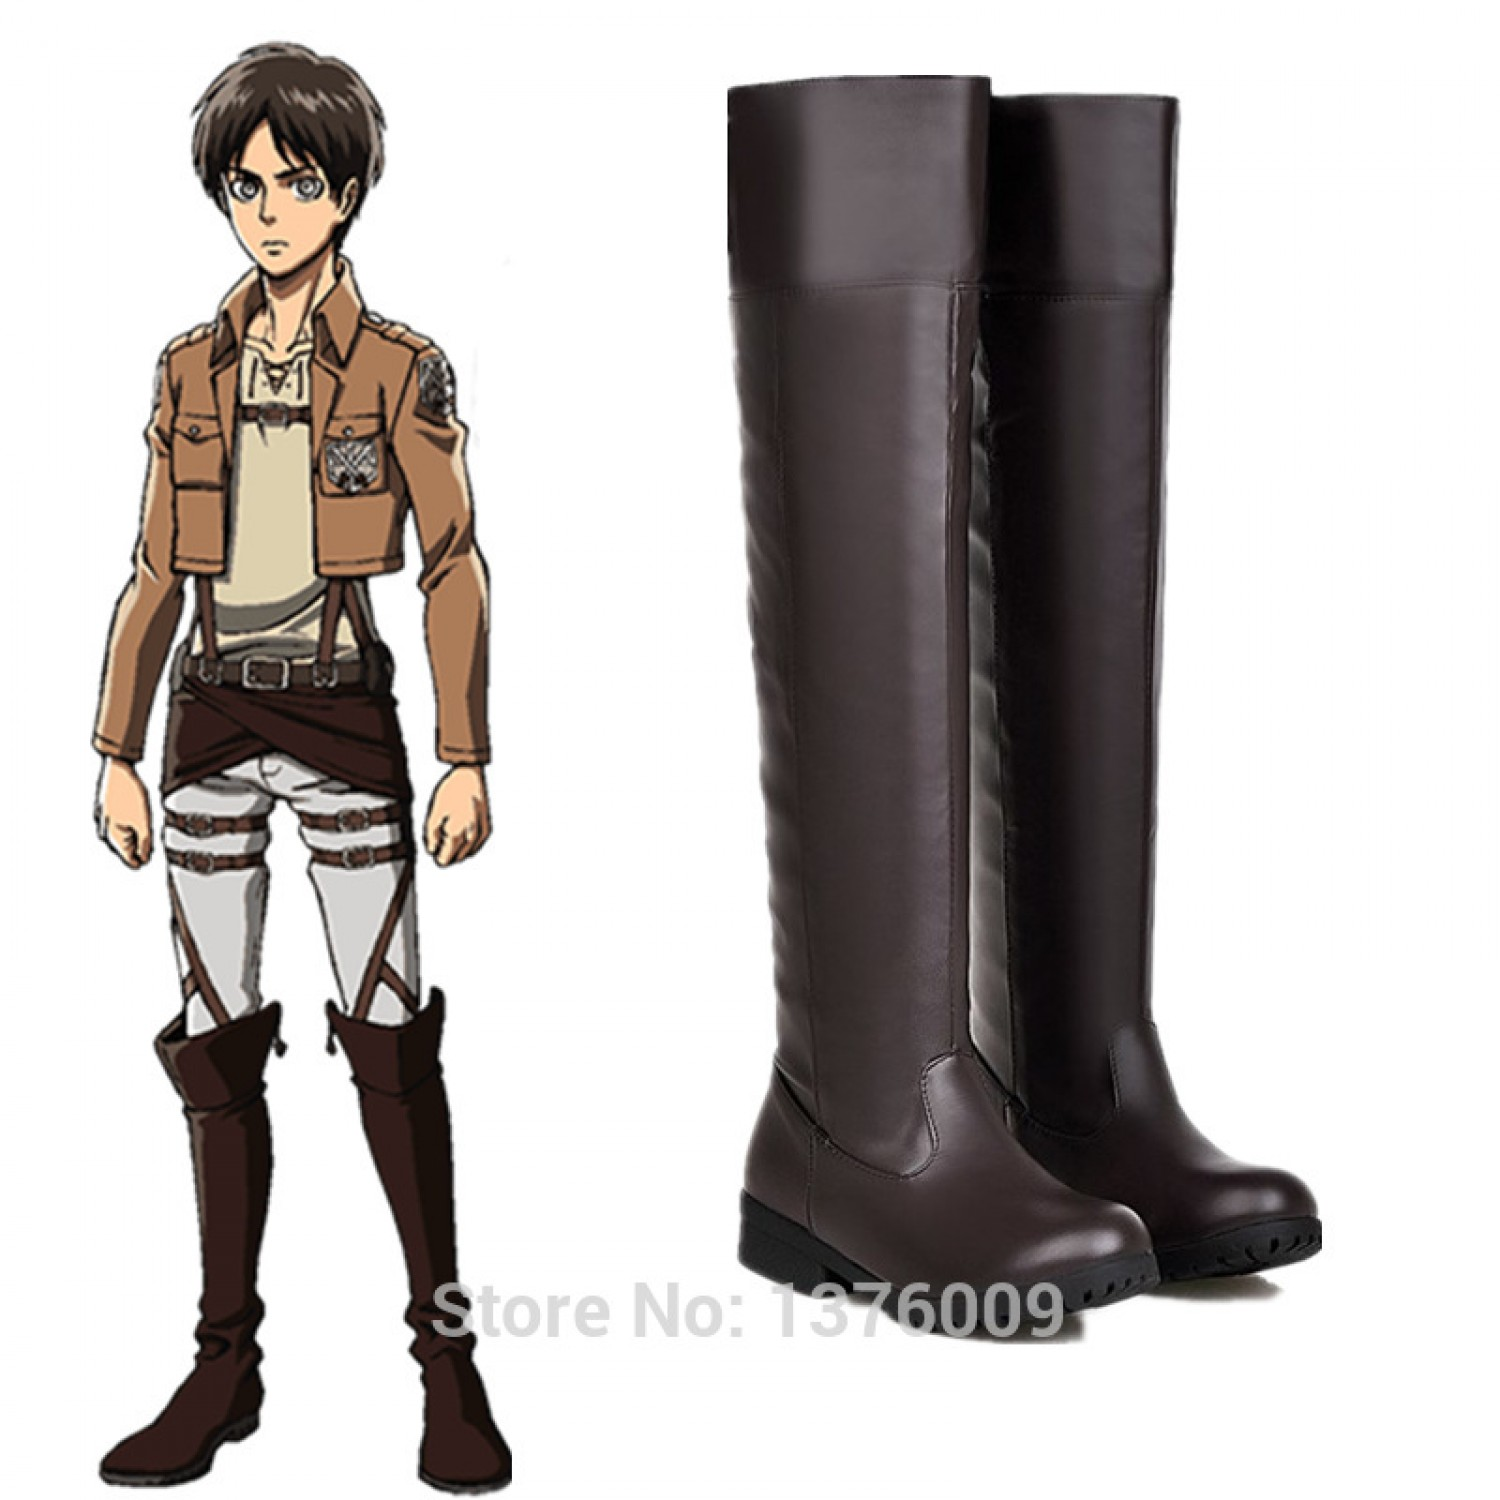 Attack on Titan Eren Yeager PU Cosplay Boots Shoes